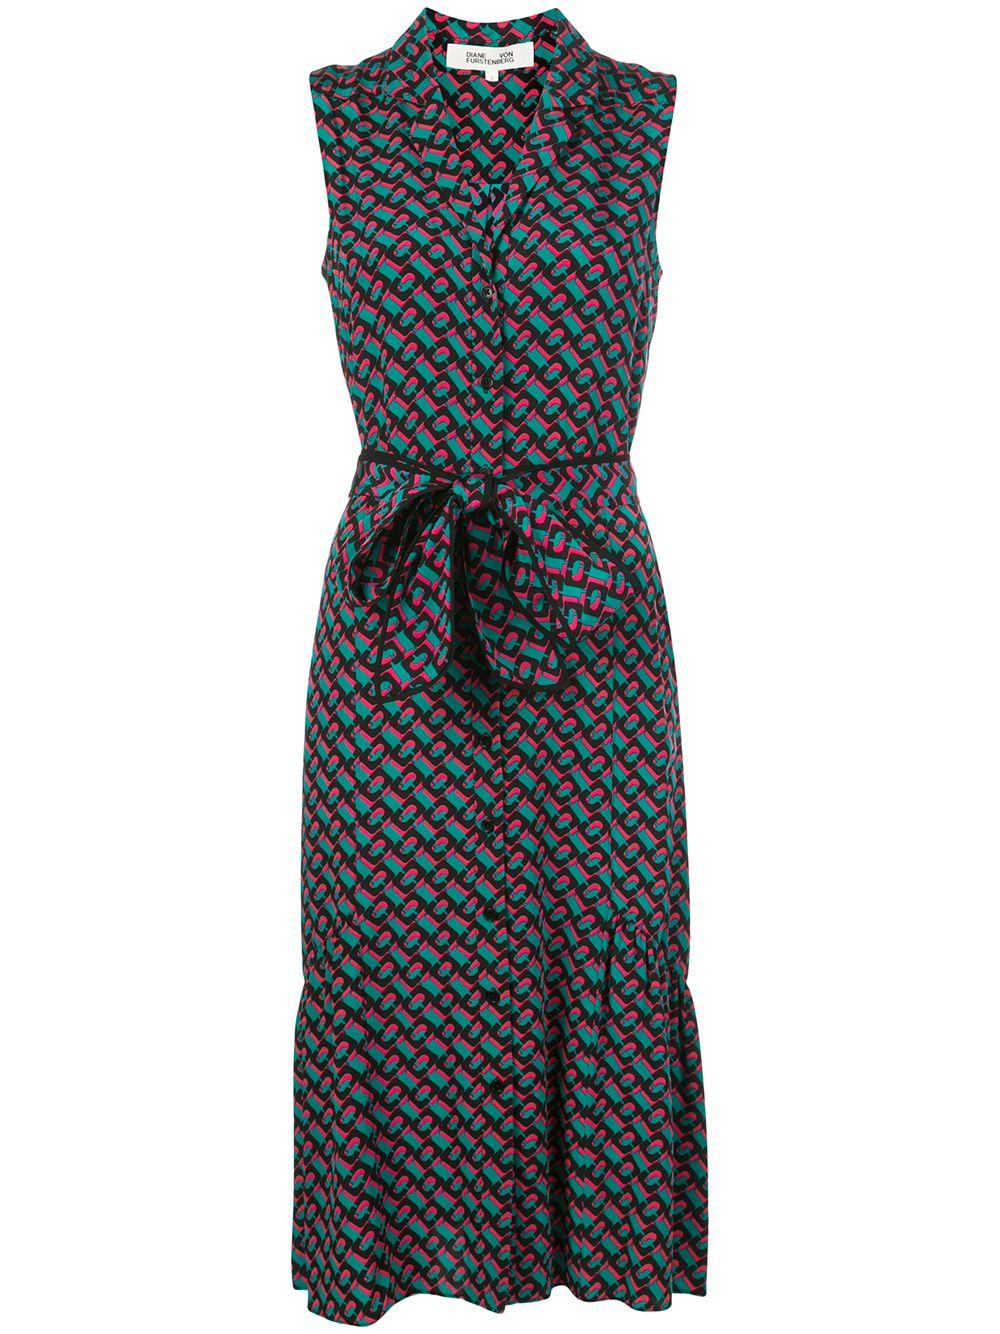 Delilah Sleeveless Wrap Dress